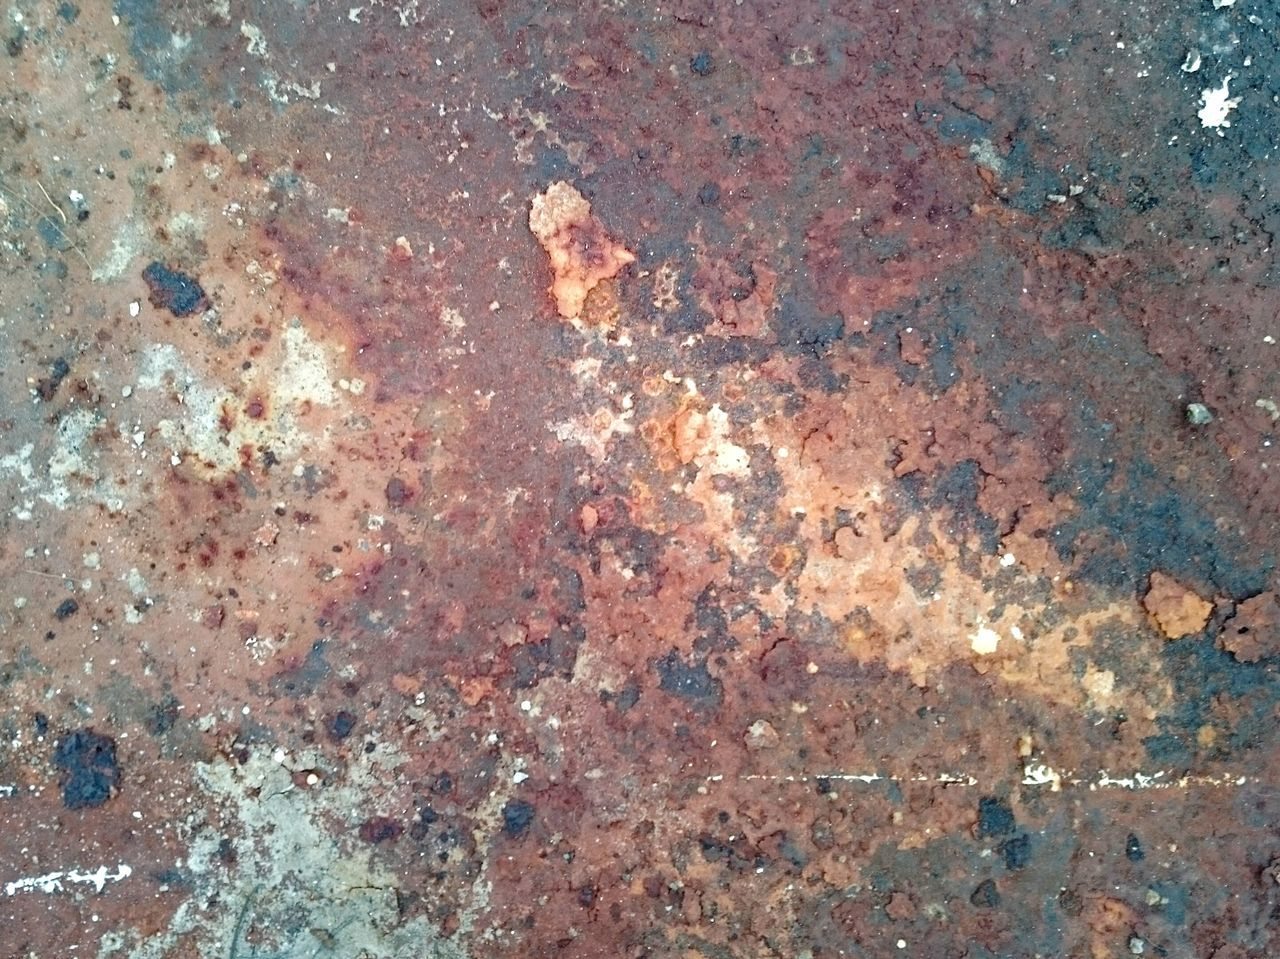 Full Frame Galaxy No People Outdoors Multi Colored Astronomy Space Star - Space Constellation Sky Luminosity Globular Star Cluster Day Rust Texture Structure Background